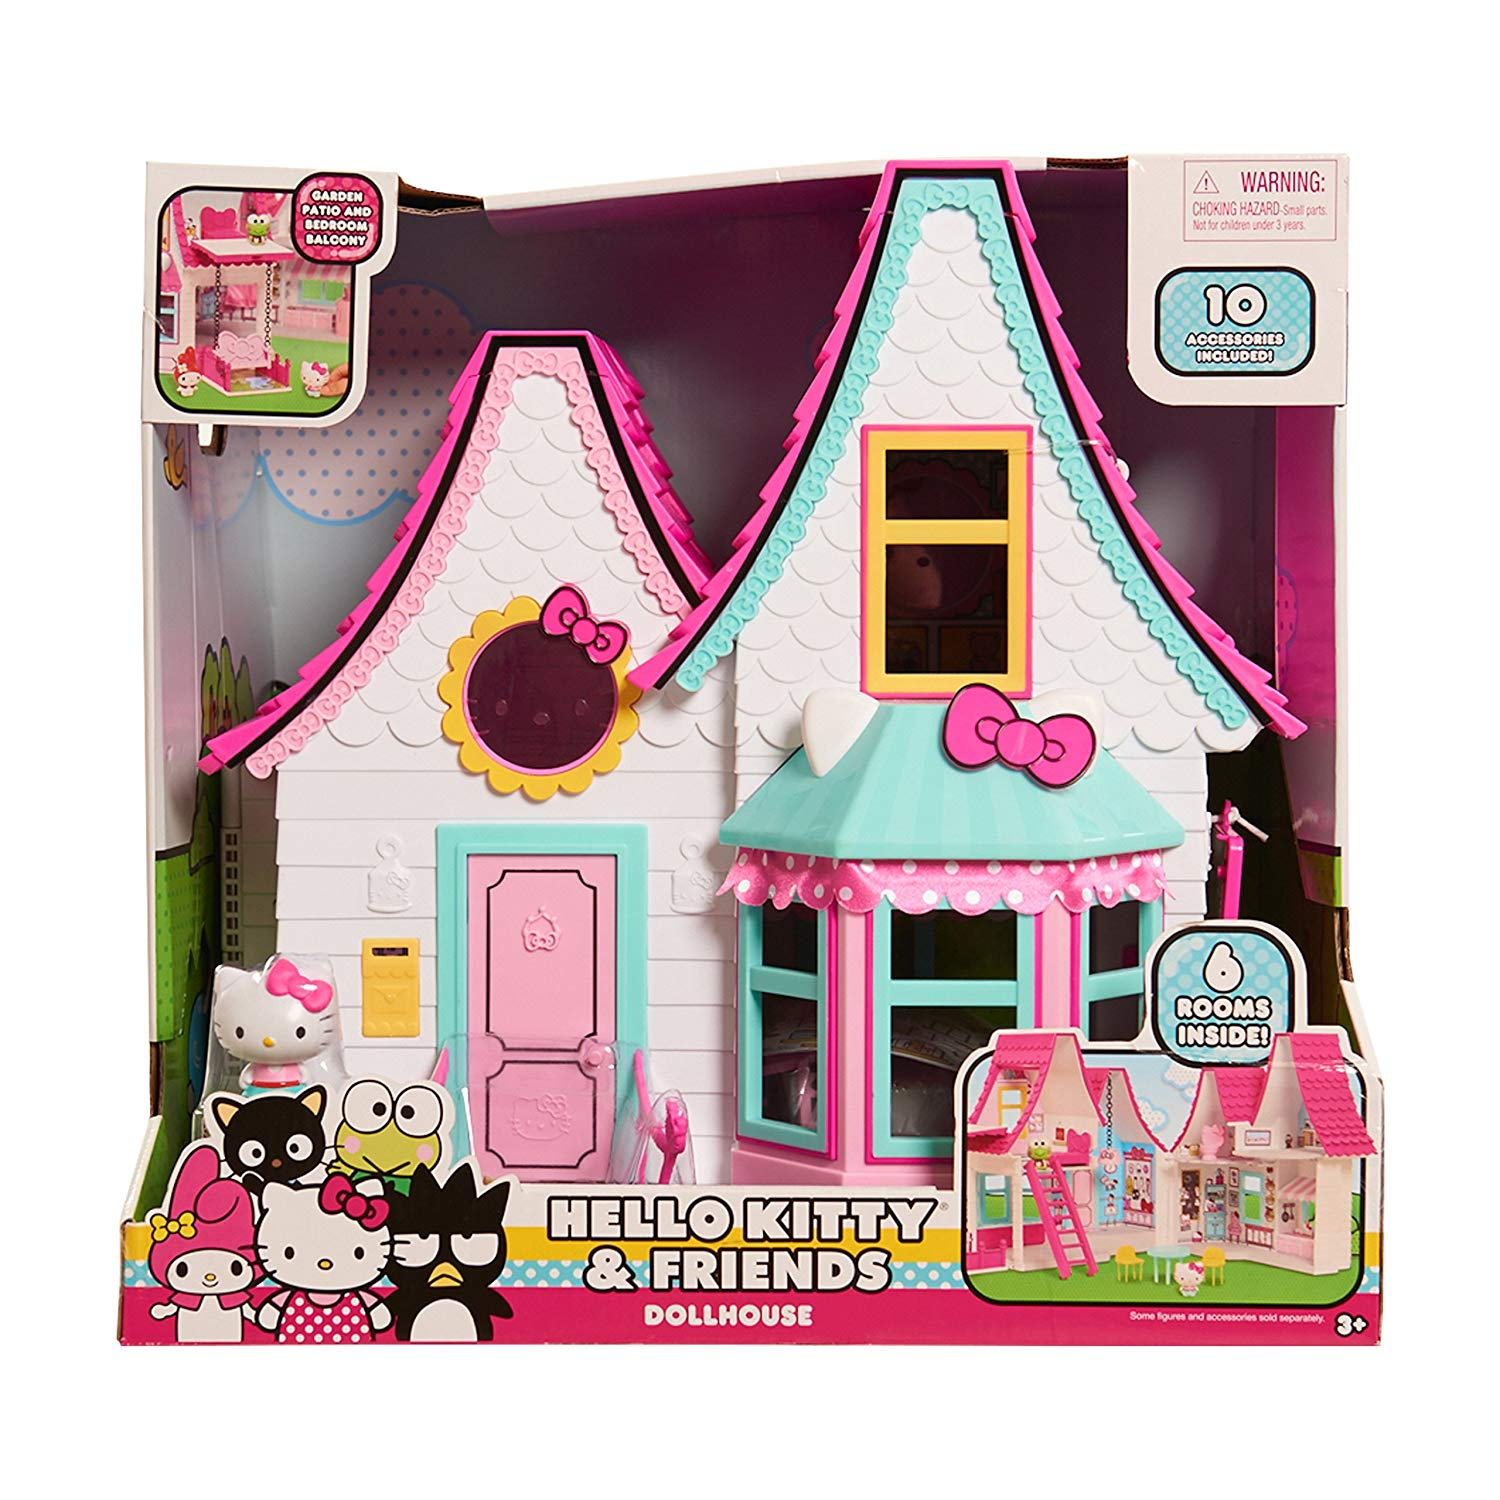 Hello Kitty Doll House 26 57 At Amazon Regularly 69 99 Daily